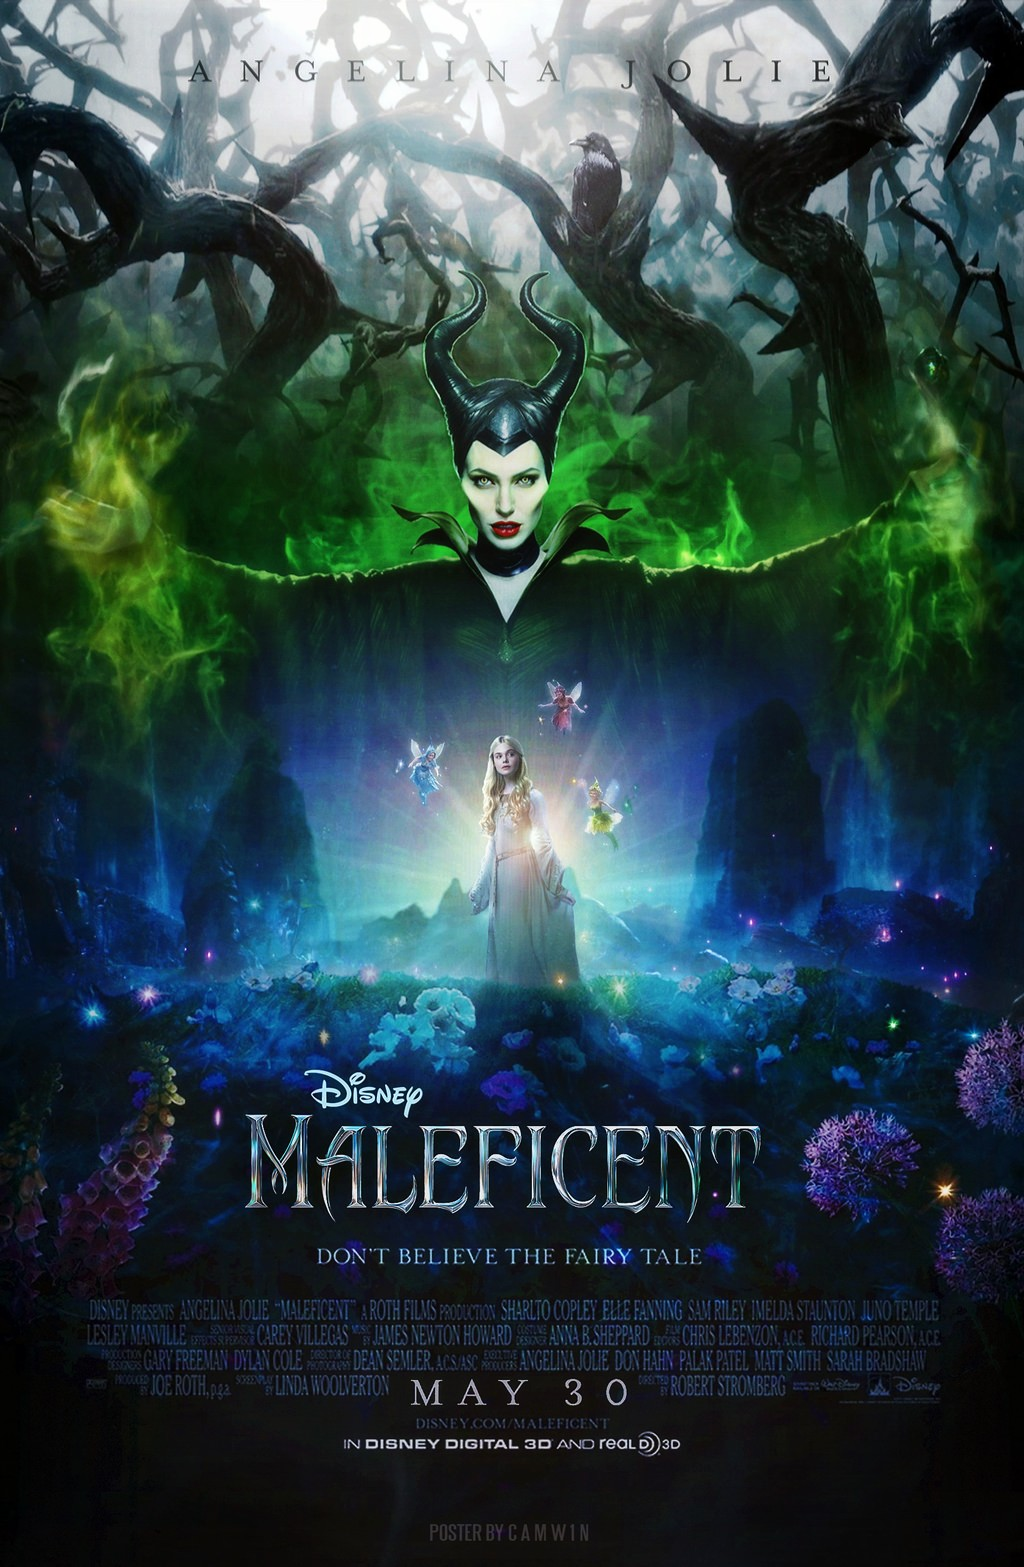 Maleficent 2014 Poster By Camw1n On Deviantart